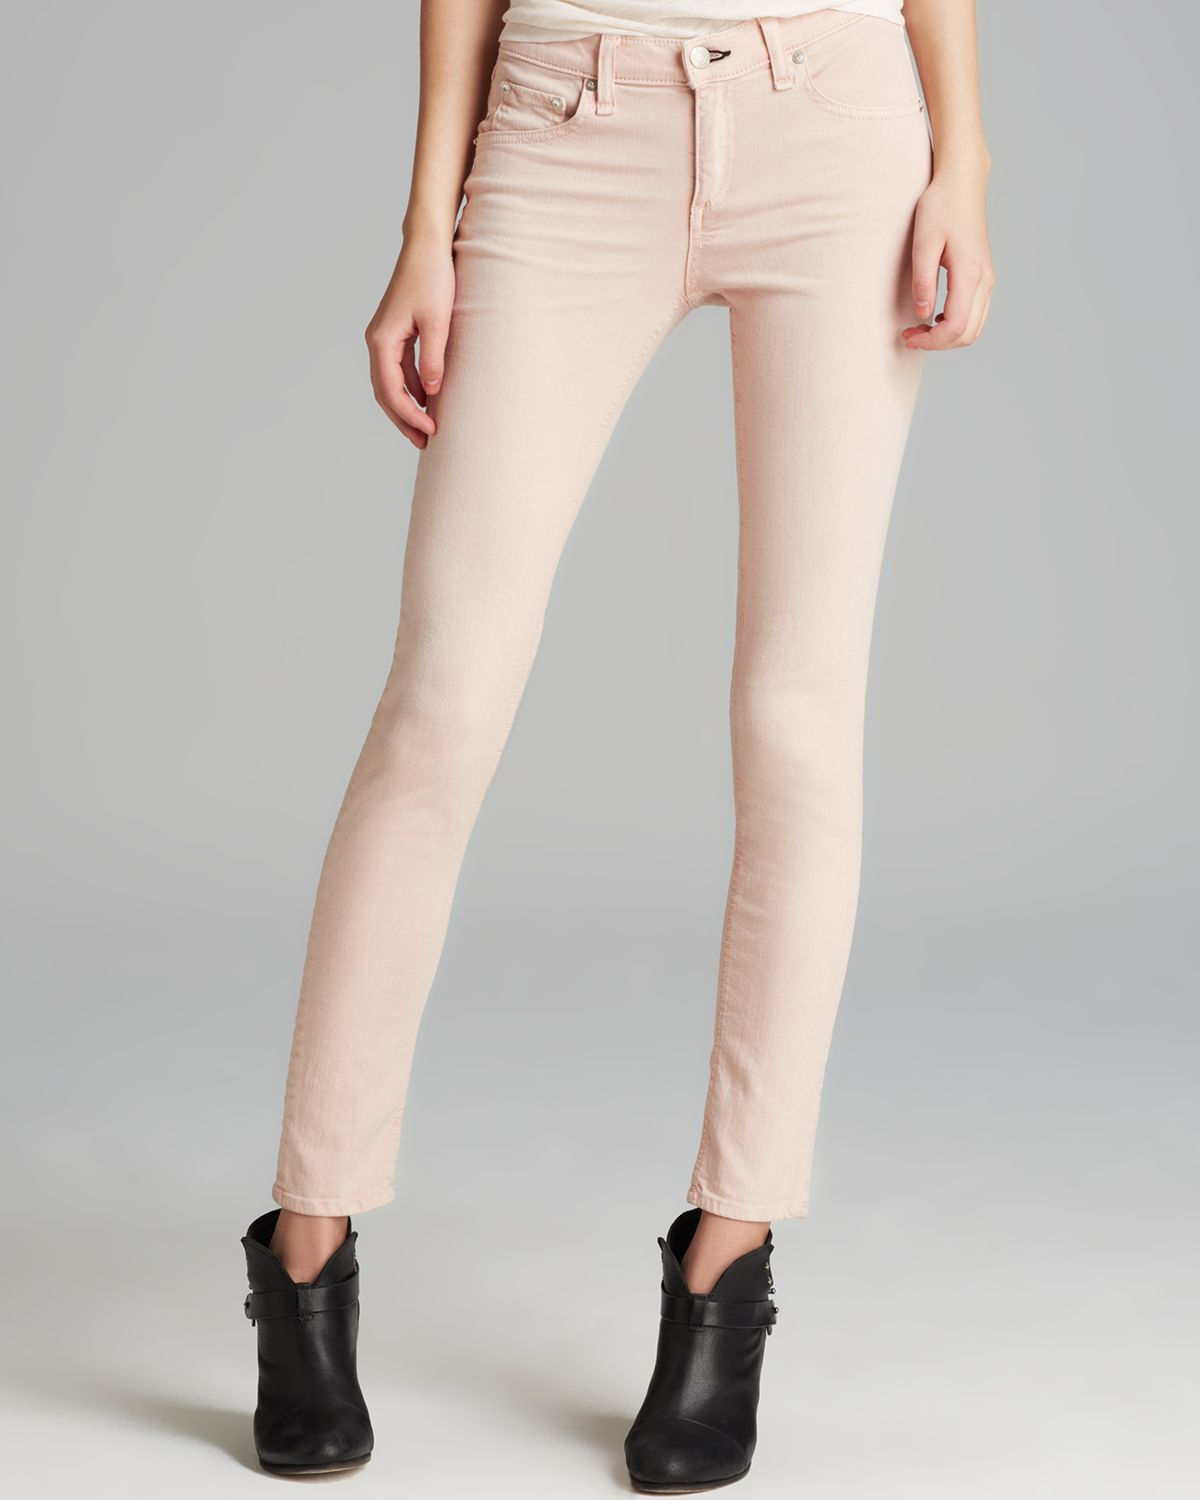 Rag & bone Jeans The Skinny in Distressed Blush in Pink | Lyst